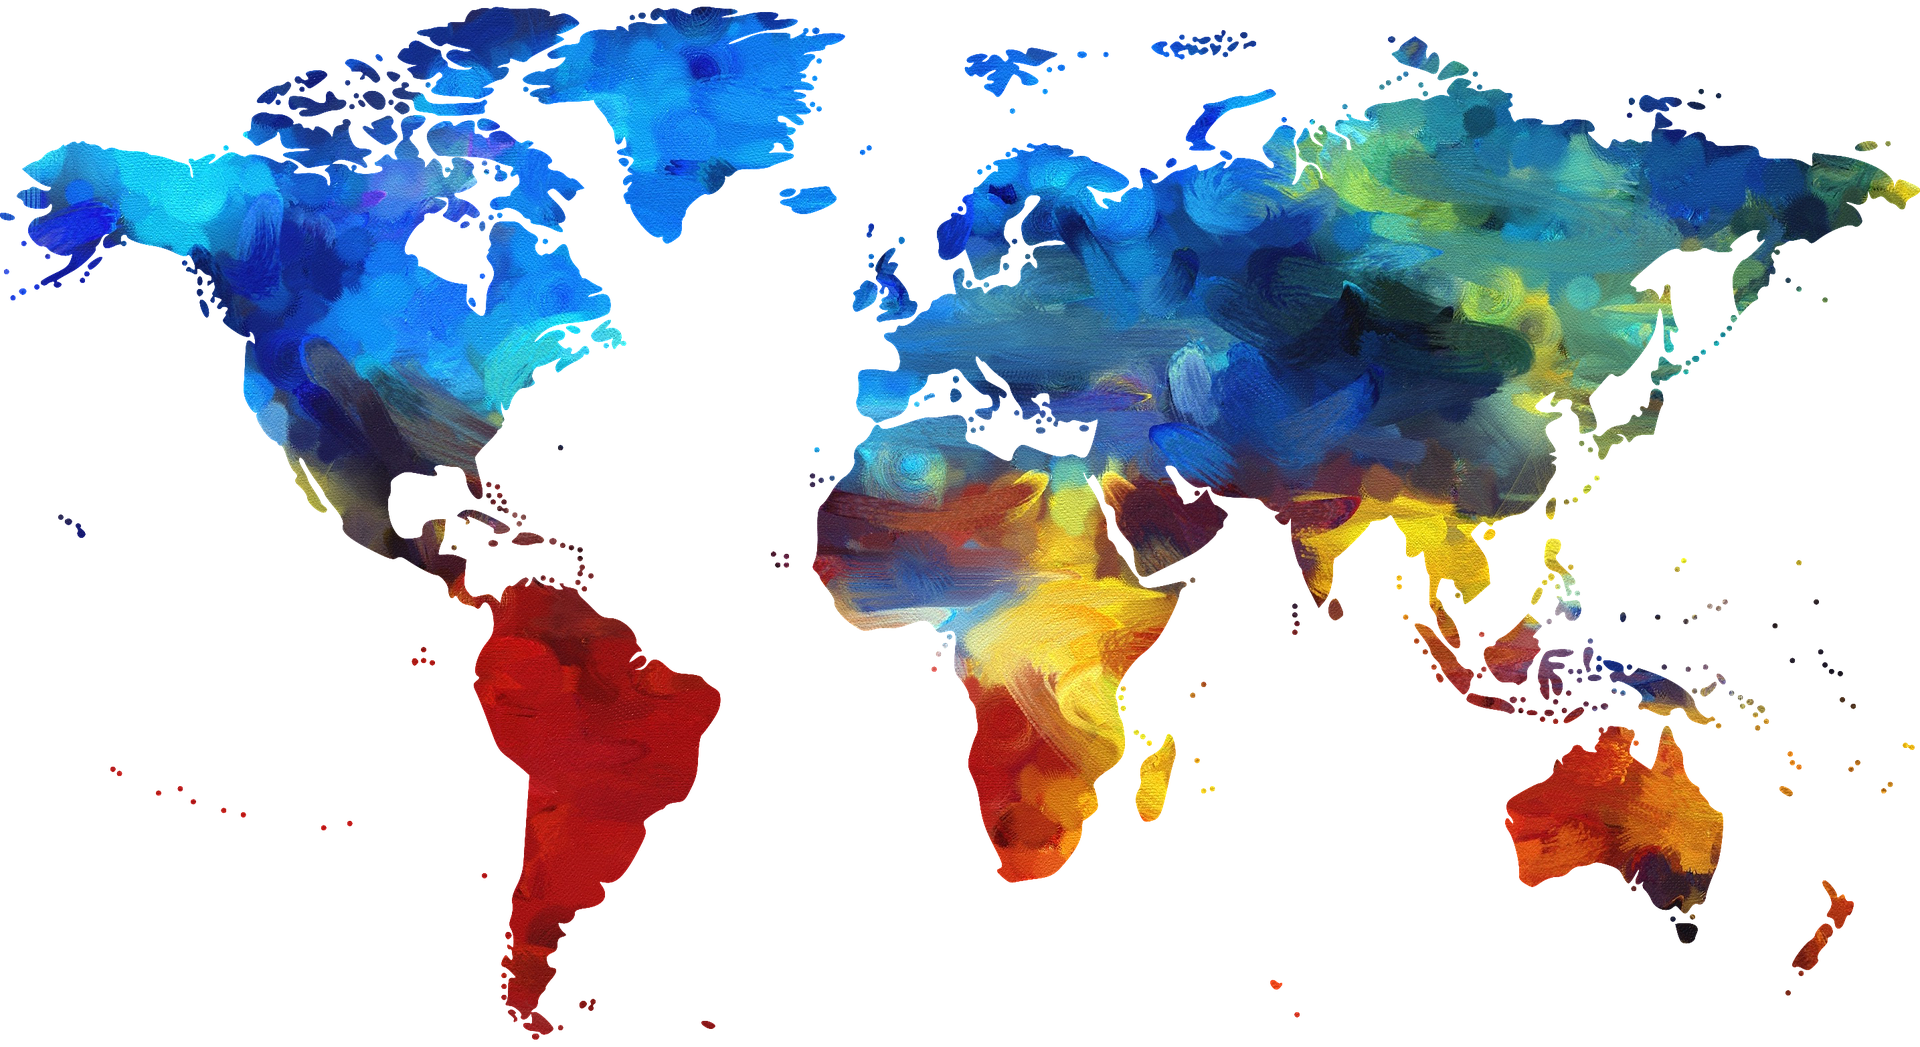 colorful world map.png